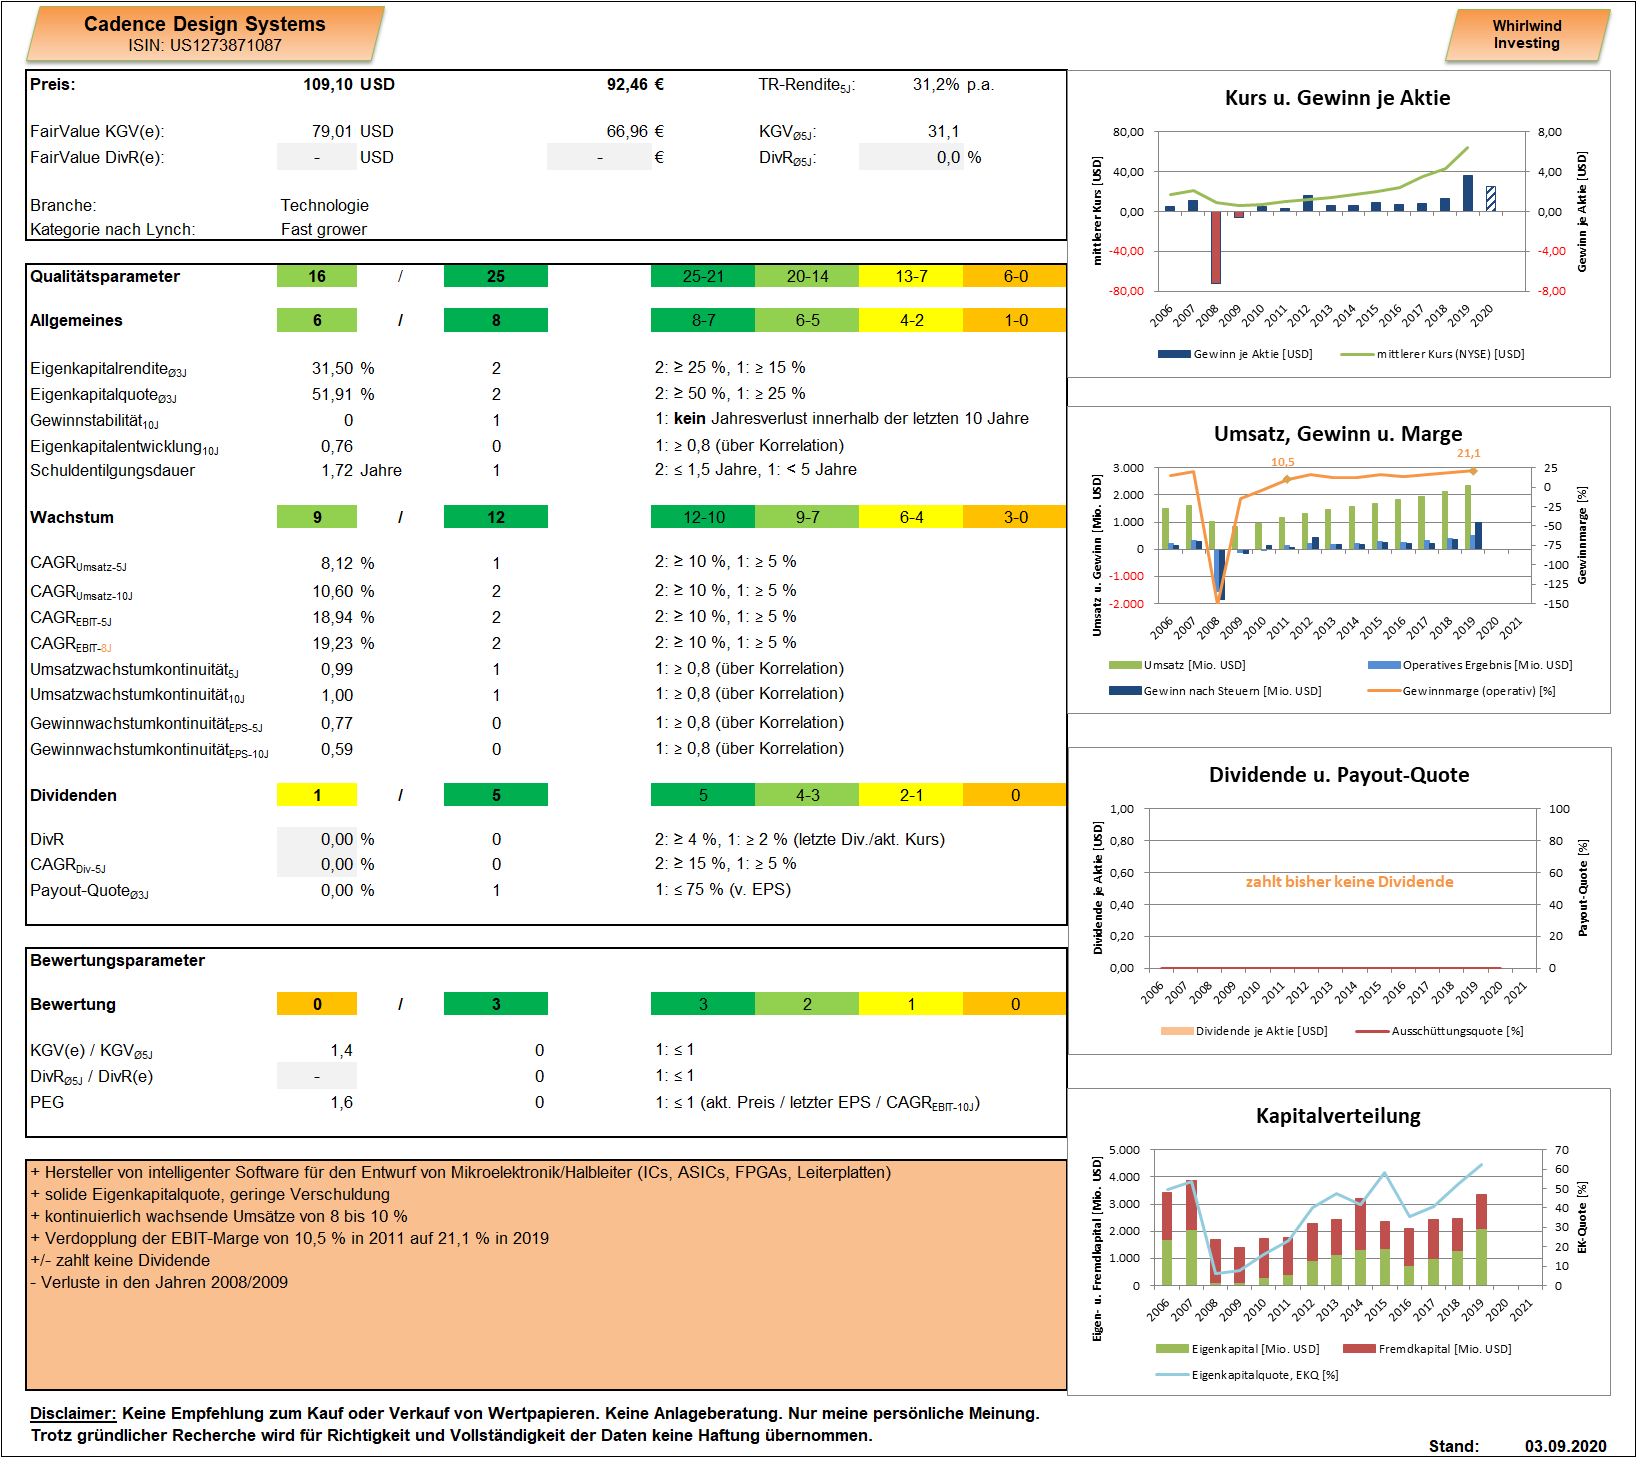 Cadence Design Systems Dashboard Whirlwind-Investing